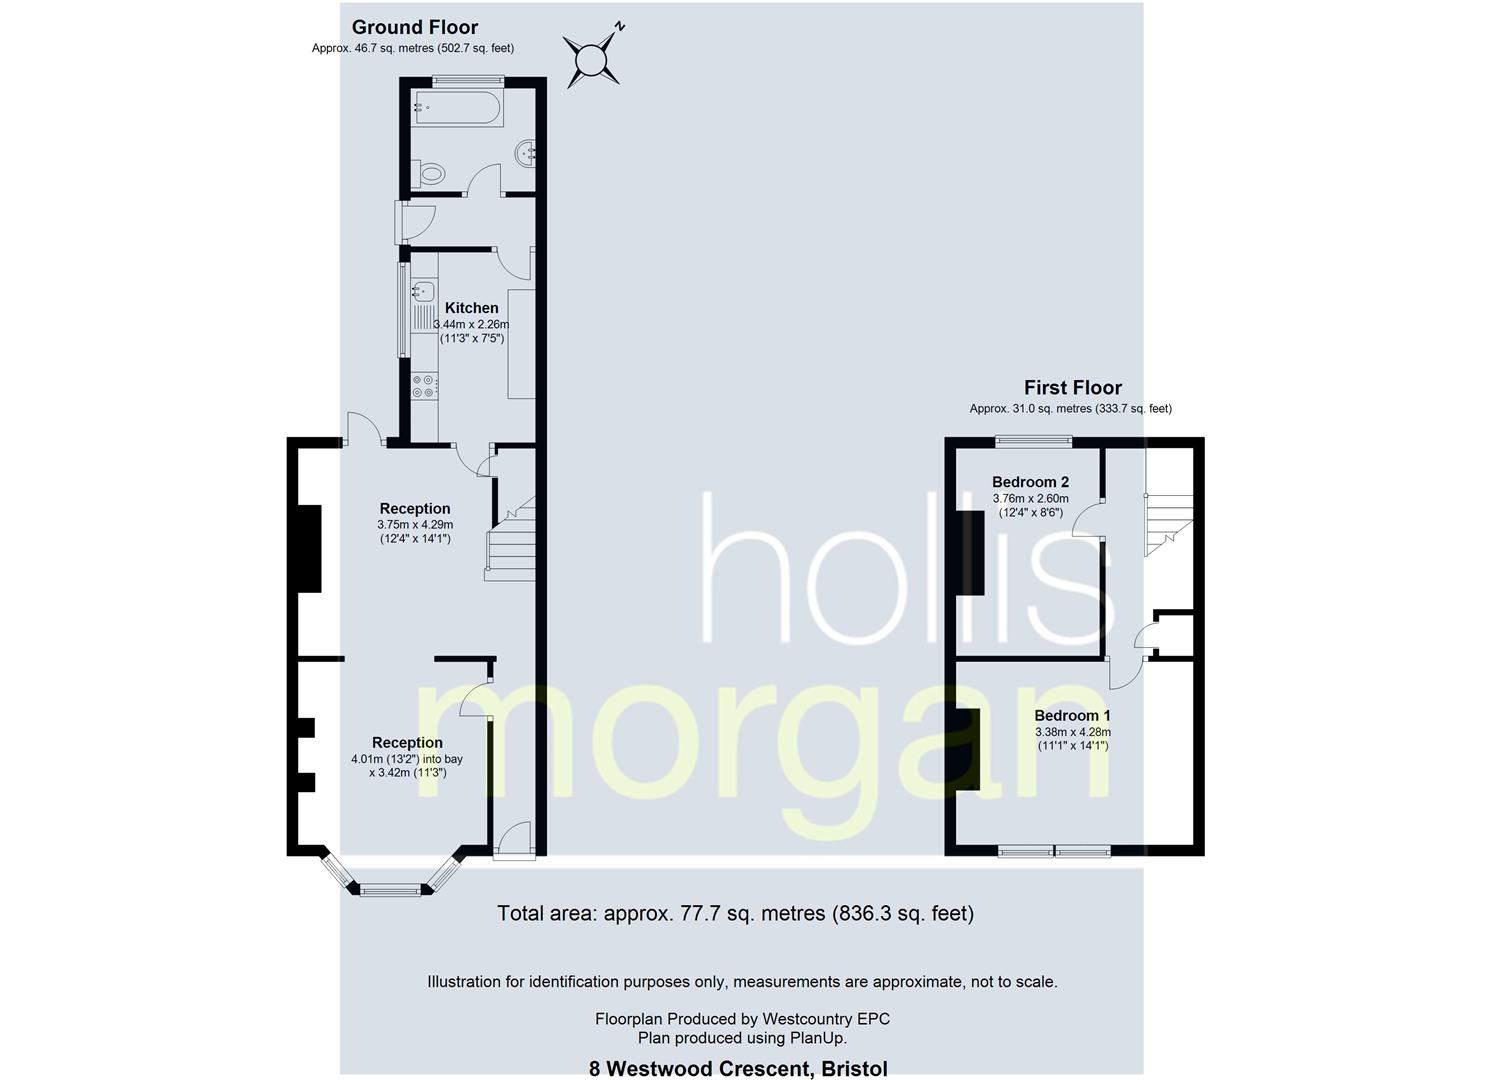 Floorplans For HOUSE FOR MODERNISATION - WESTWOOD CRESCENT